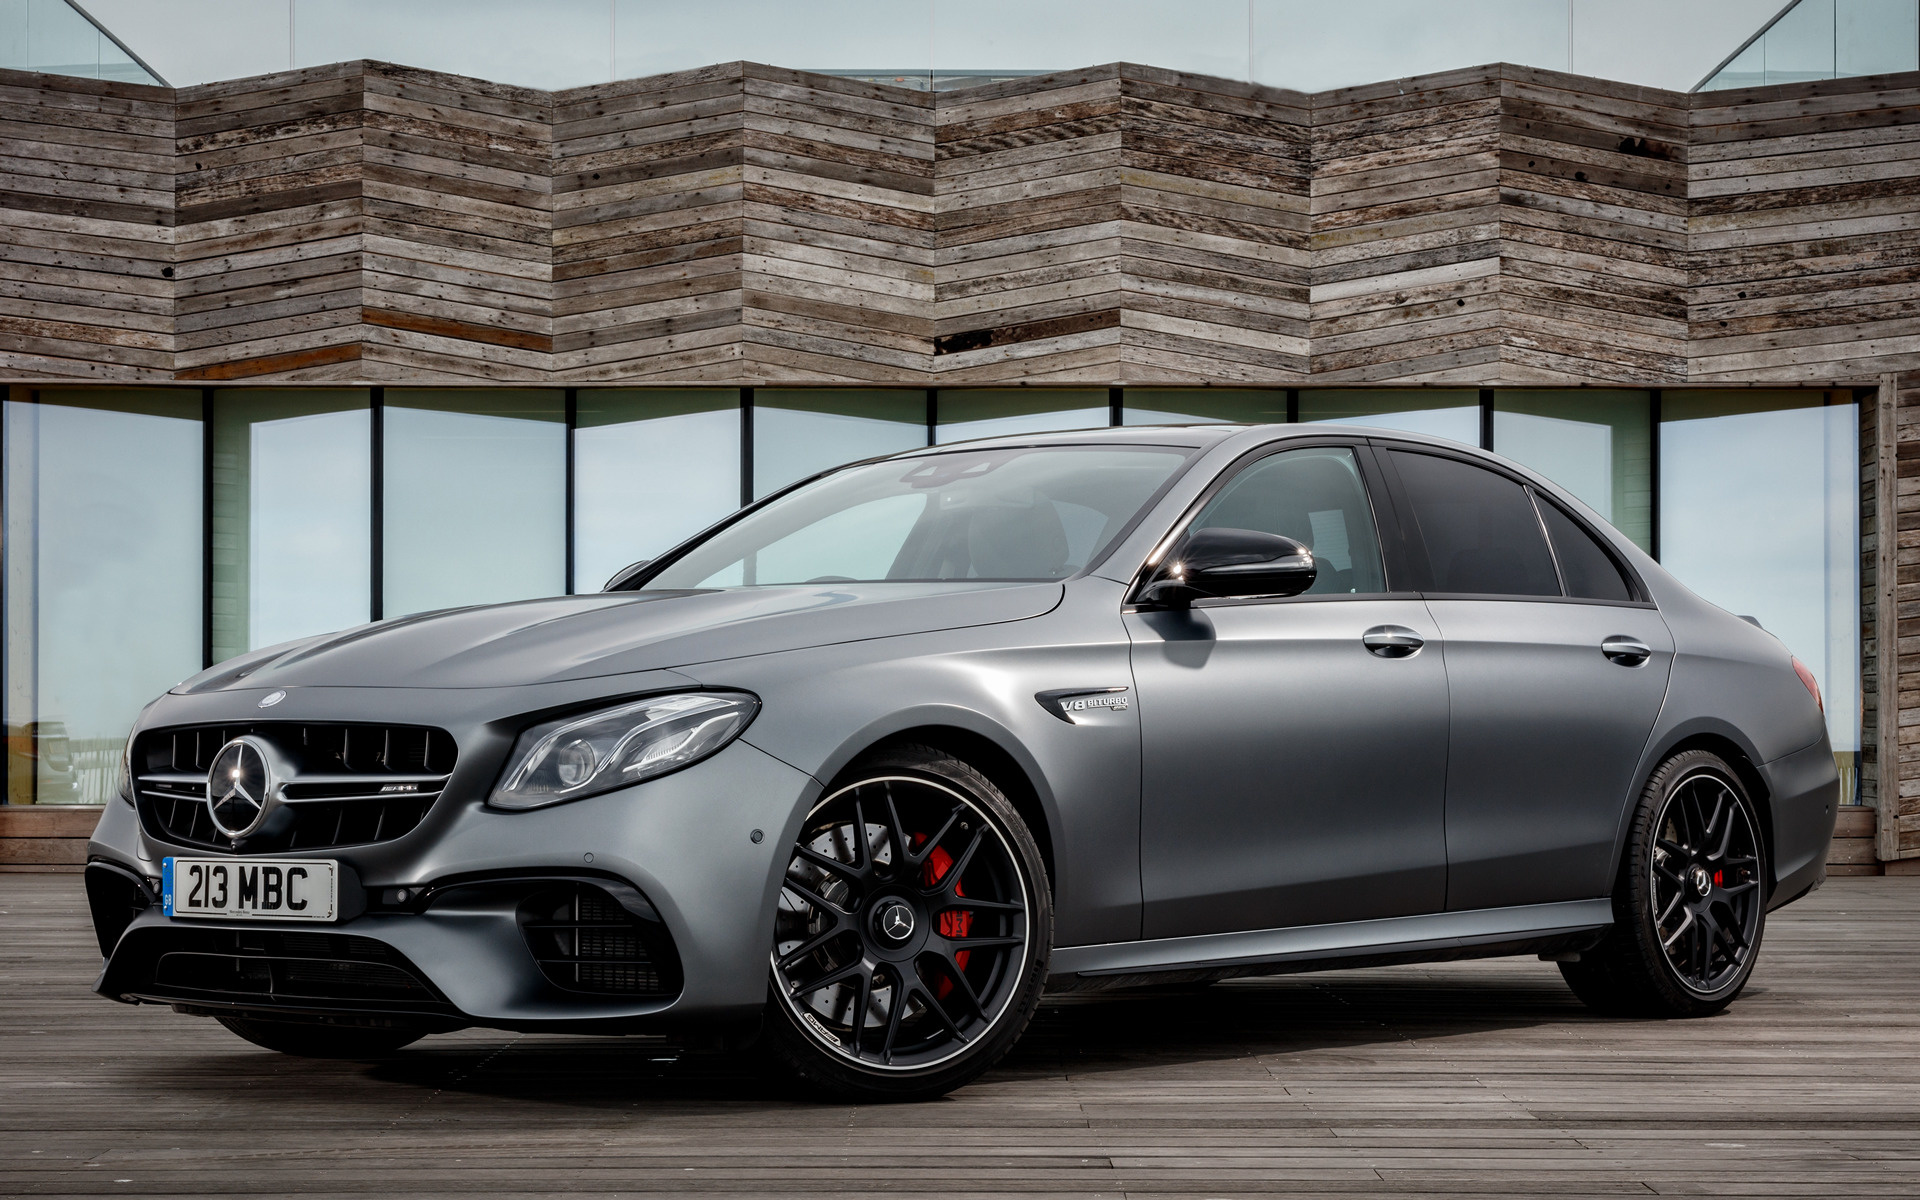 Mercedes Coupe For Sale >> 2017 Mercedes-AMG E 63 S (UK) - Wallpapers and HD Images